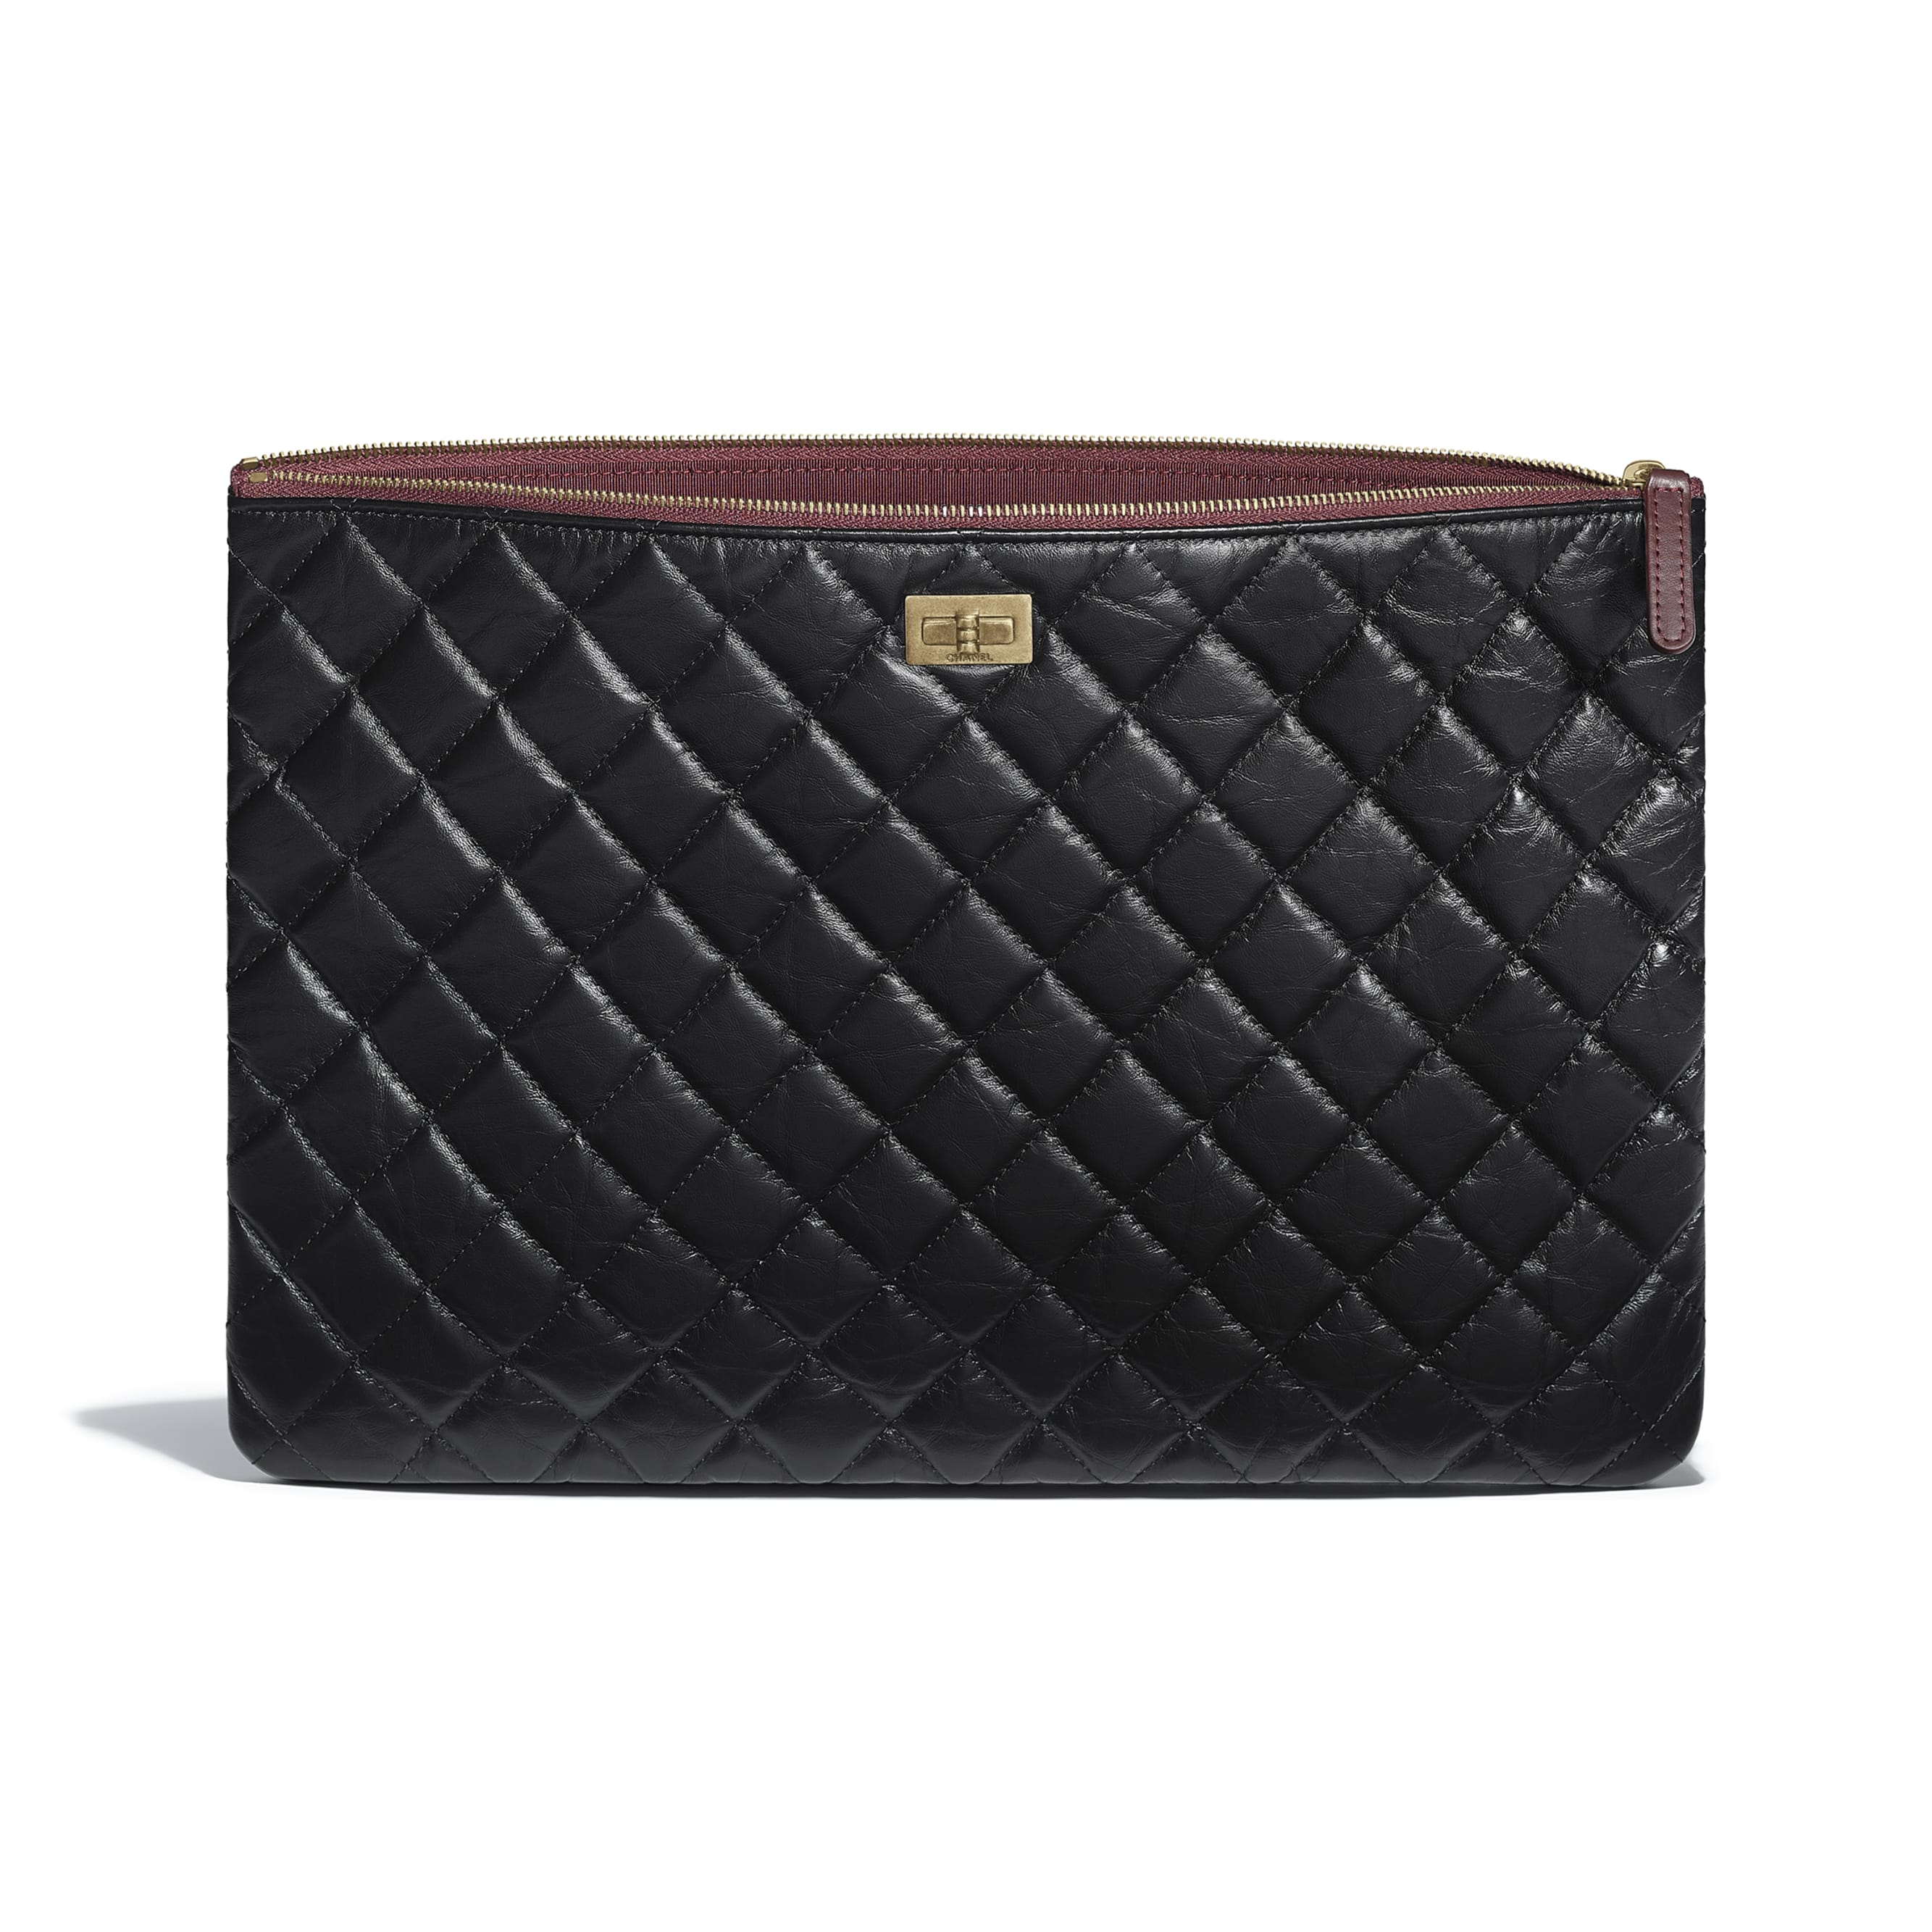 Large 2.55 Pouch - Black - Aged Calfskin & Gold-Tone Metal - Other view - see standard sized version